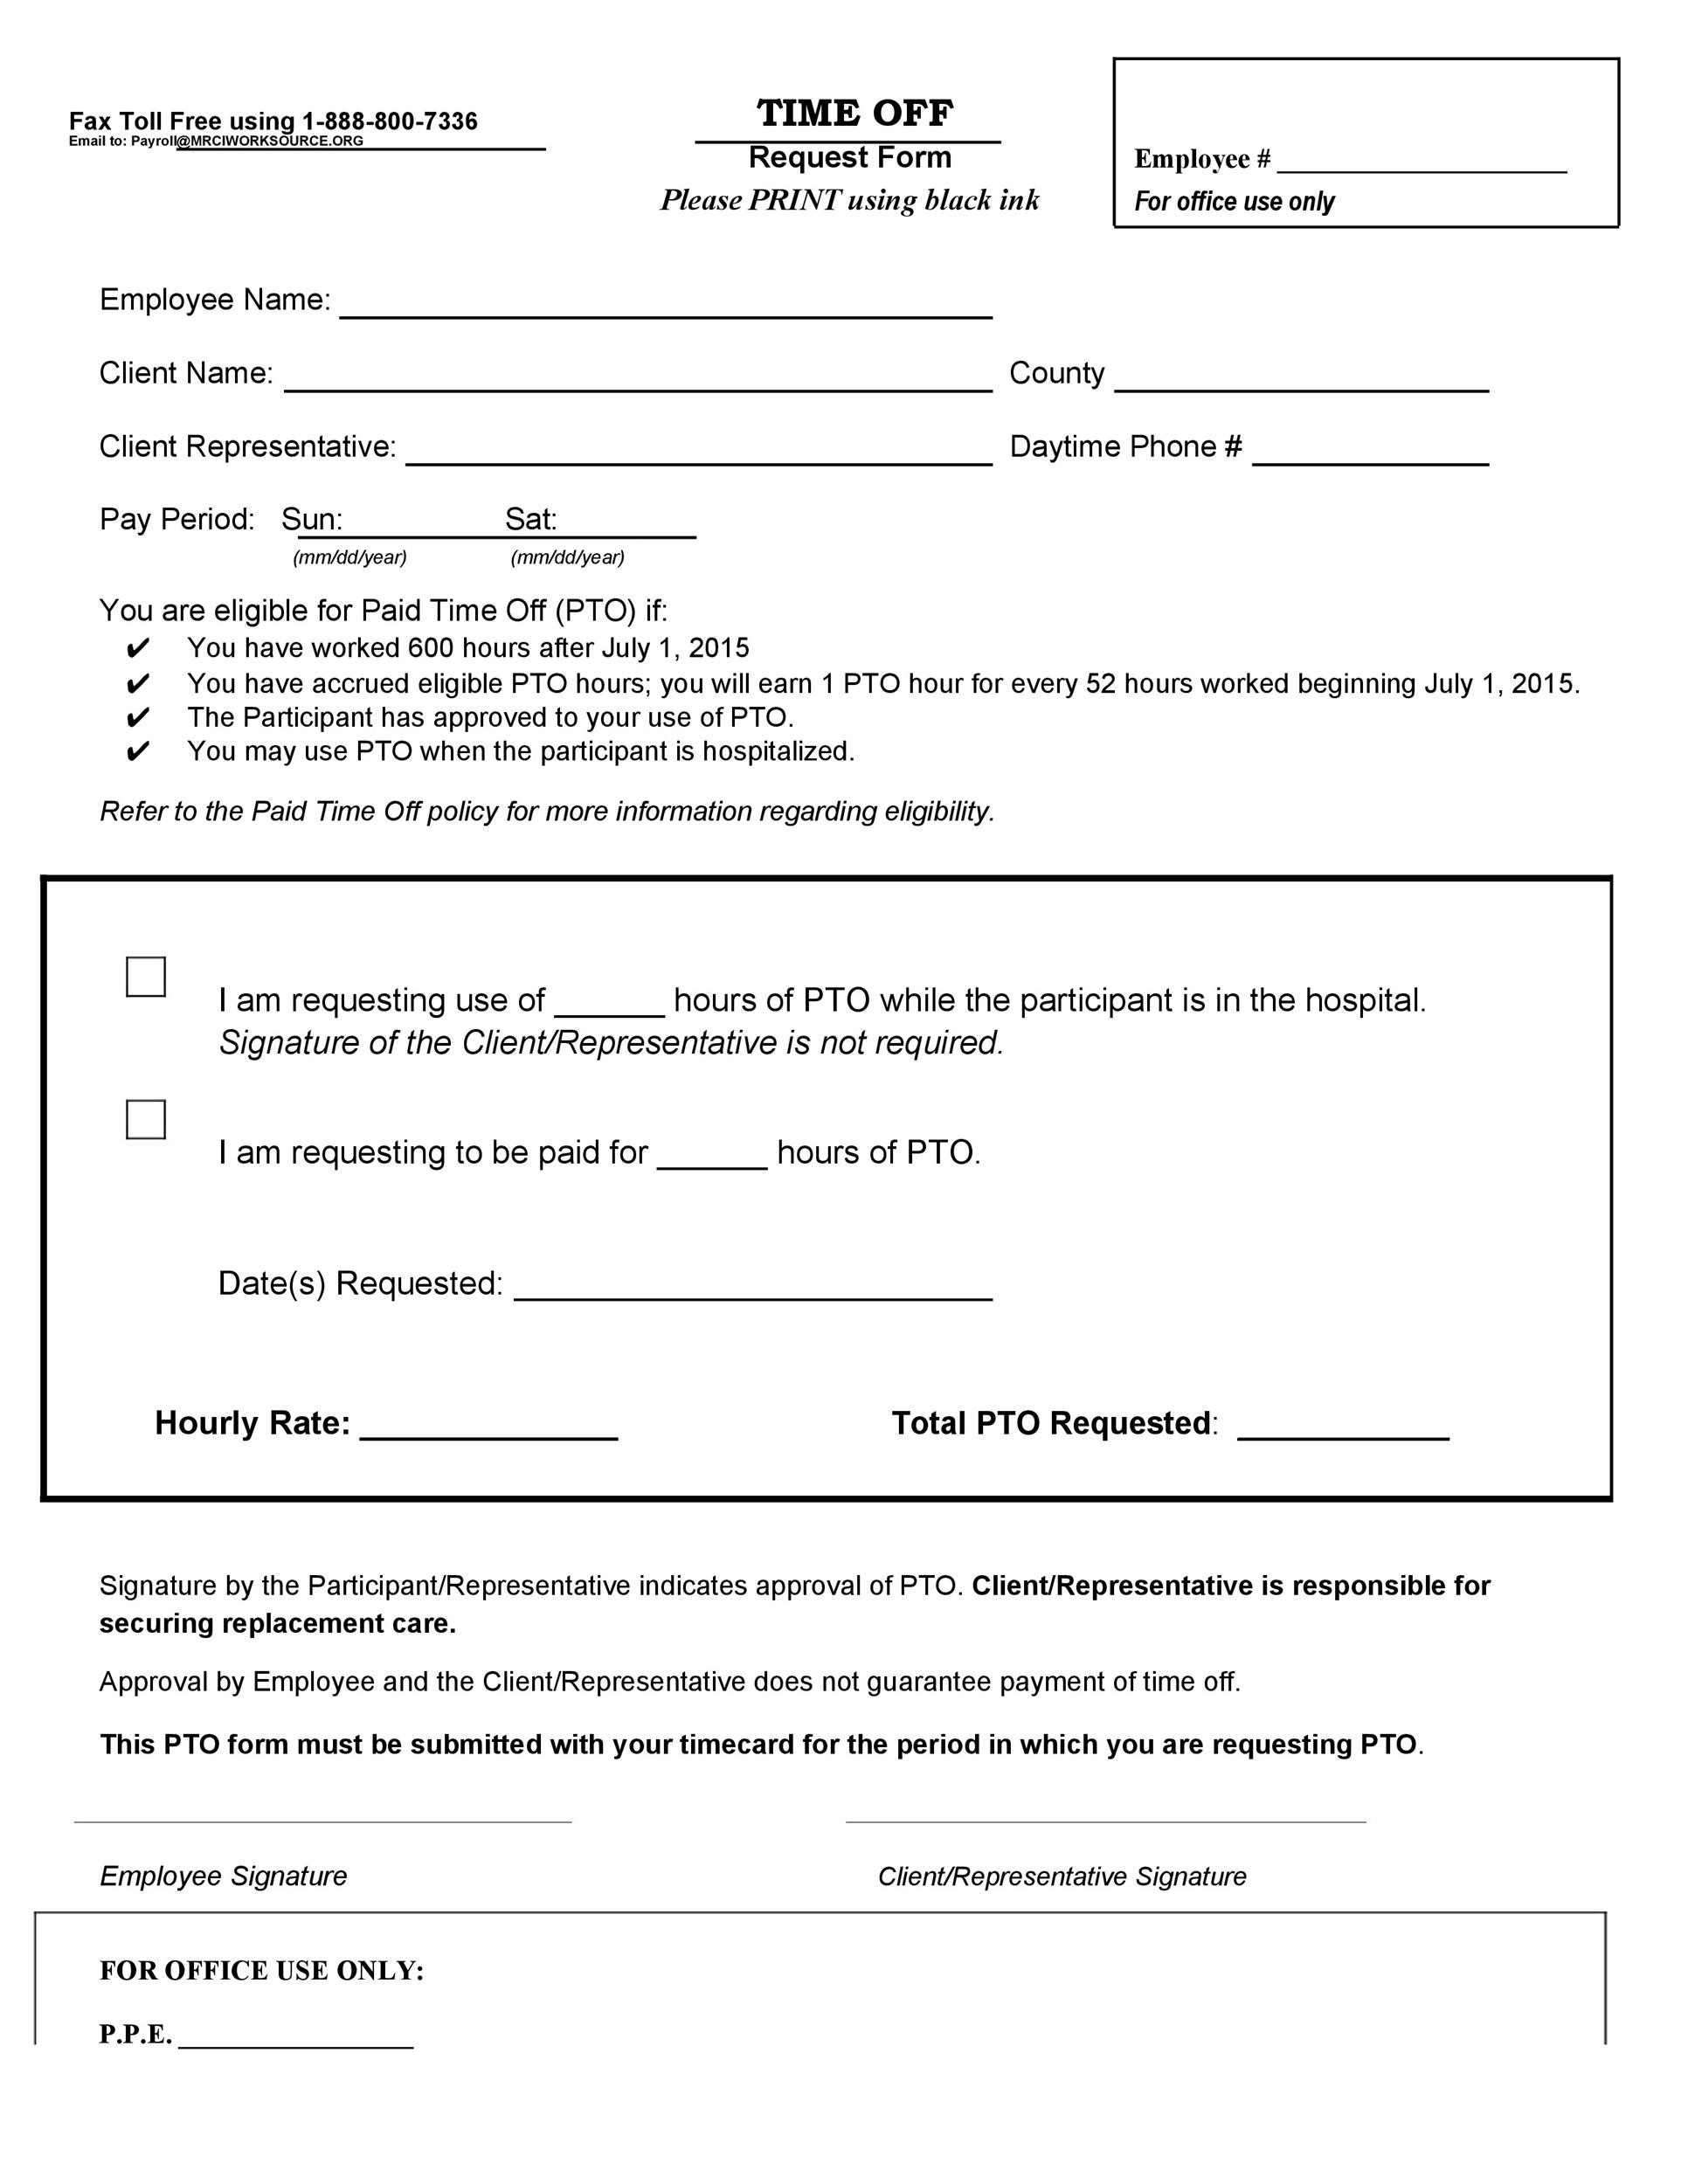 Time Off Request Form Free  CityEsporaCo